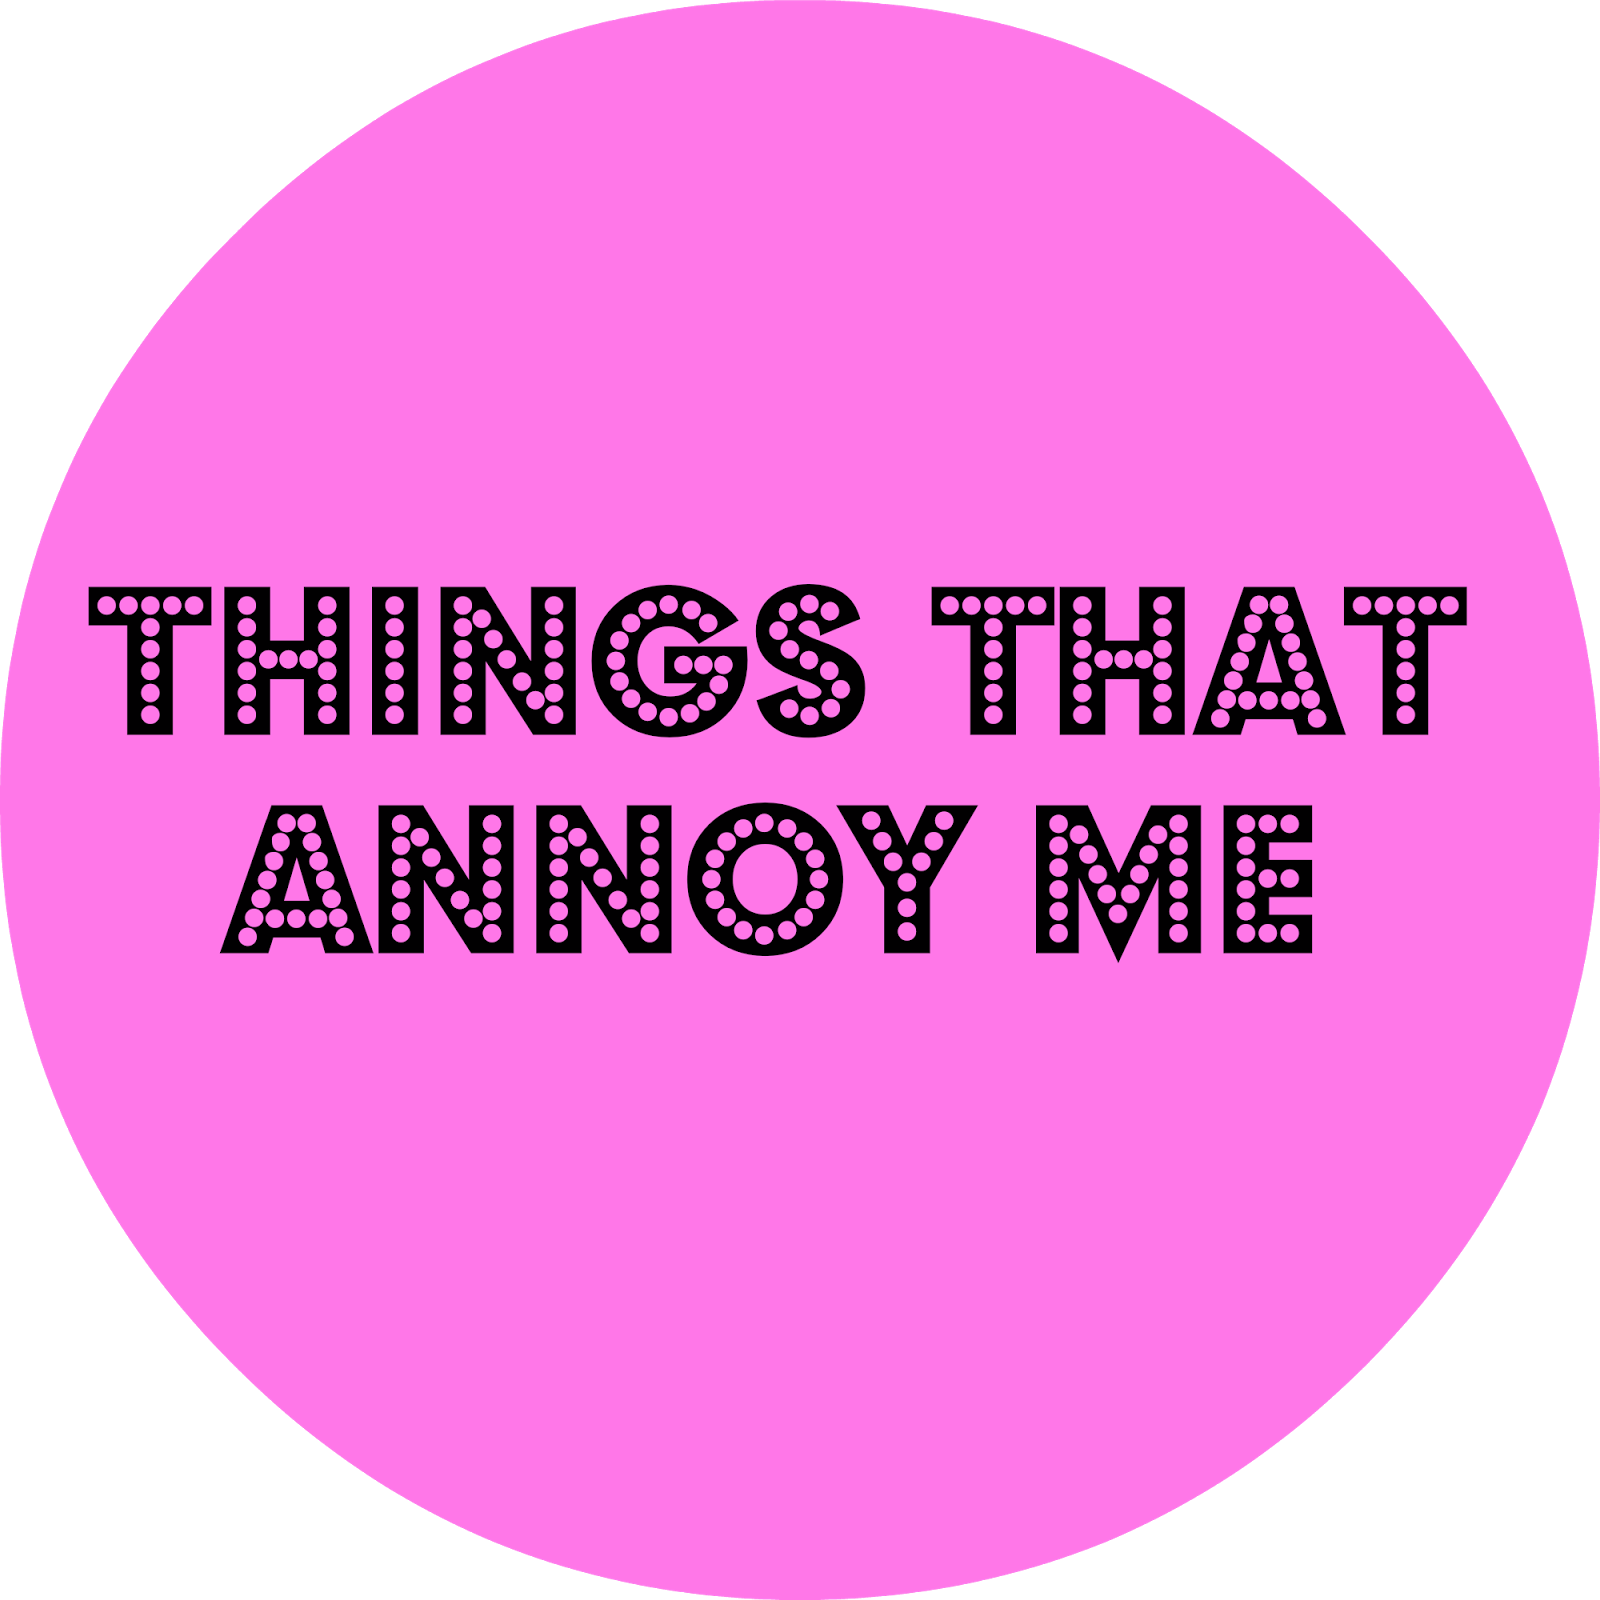 thing that annoy me essay Open document below is an essay on thing that annoy me from anti essays, your source for research papers, essays, and term paper examples.